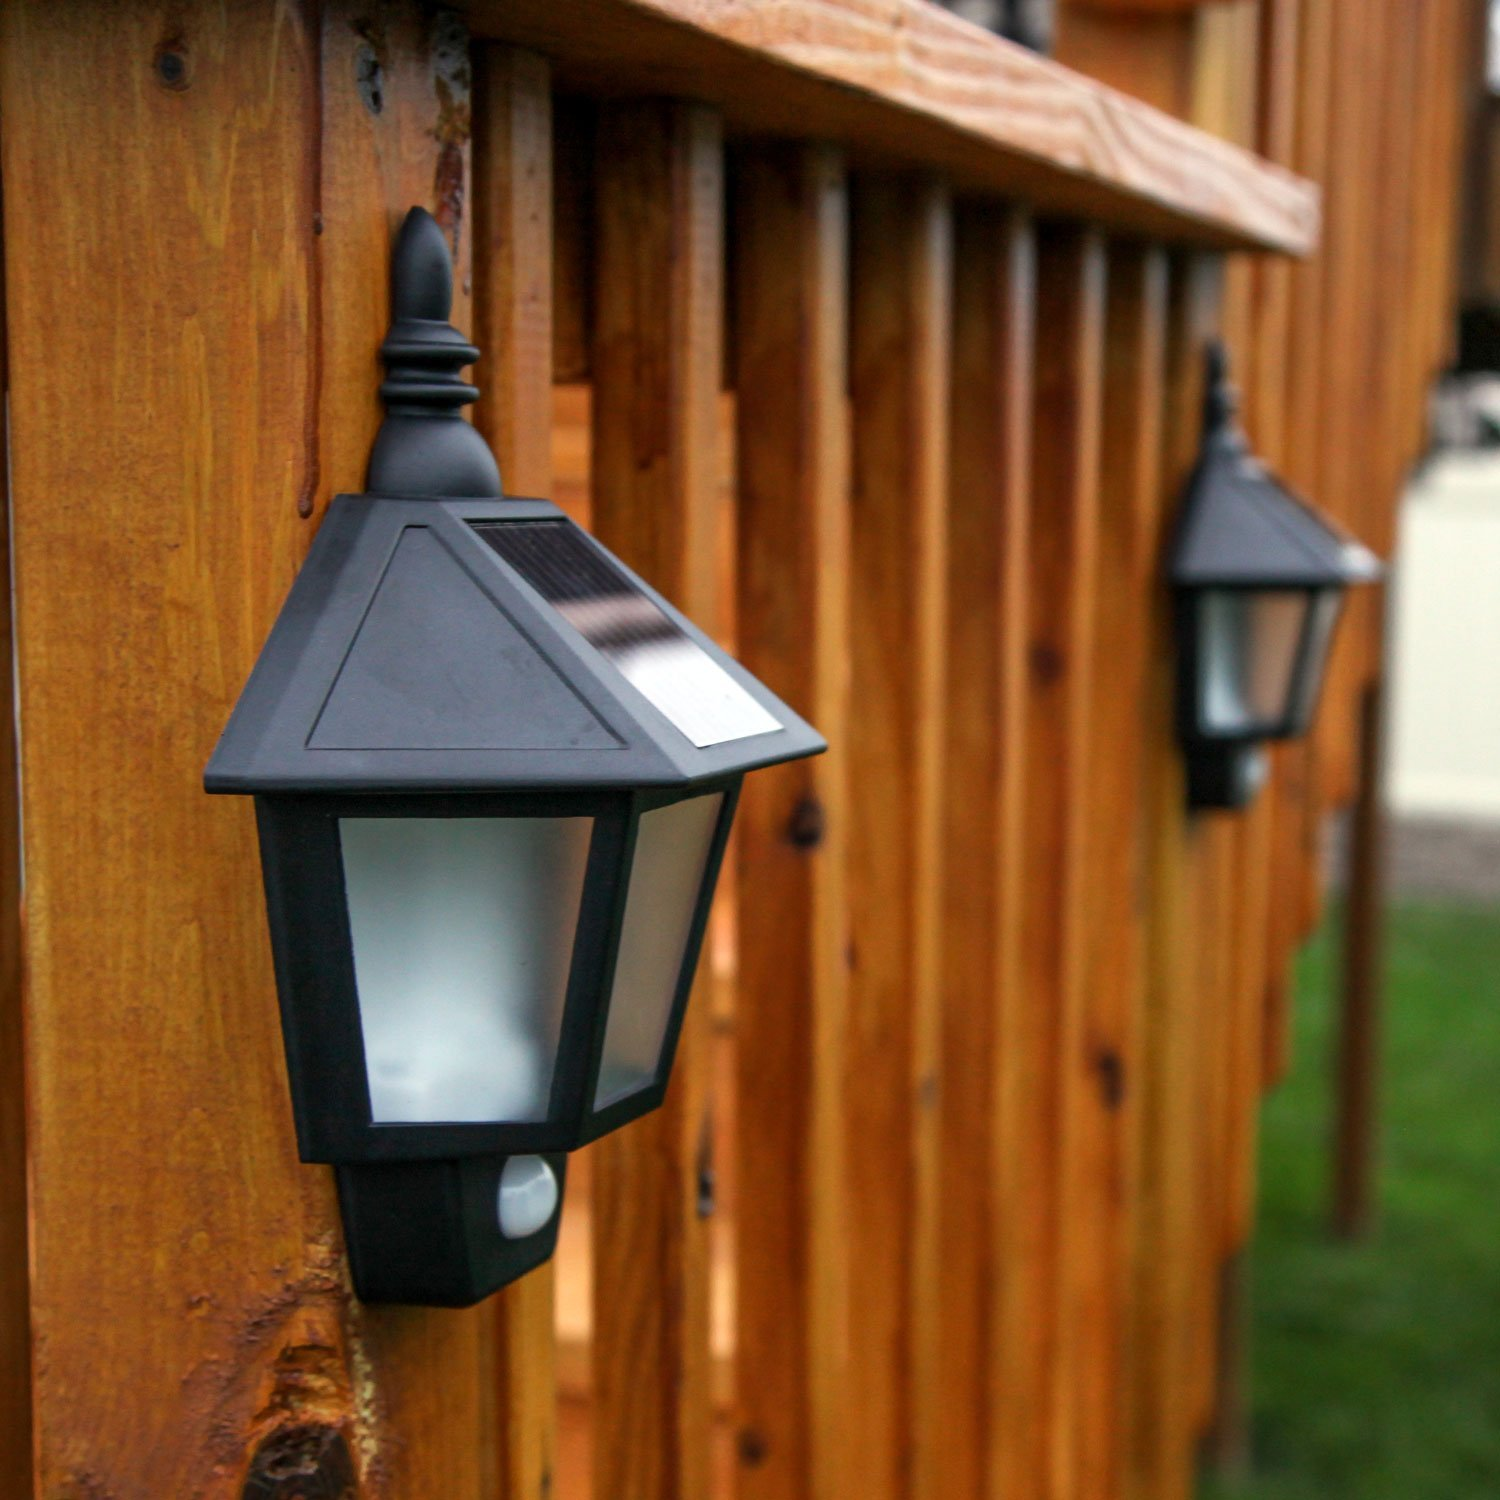 2 Solar light Mount Lantern Solar Rechargeable Security LED Lamp Outdoor Garden Landscape Path Way Hook Solar Lamp2 Solar light Mount Lantern Solar Rechargeable Security LED Lamp Outdoor Garden Landscape Path Way Hook Solar Lamp